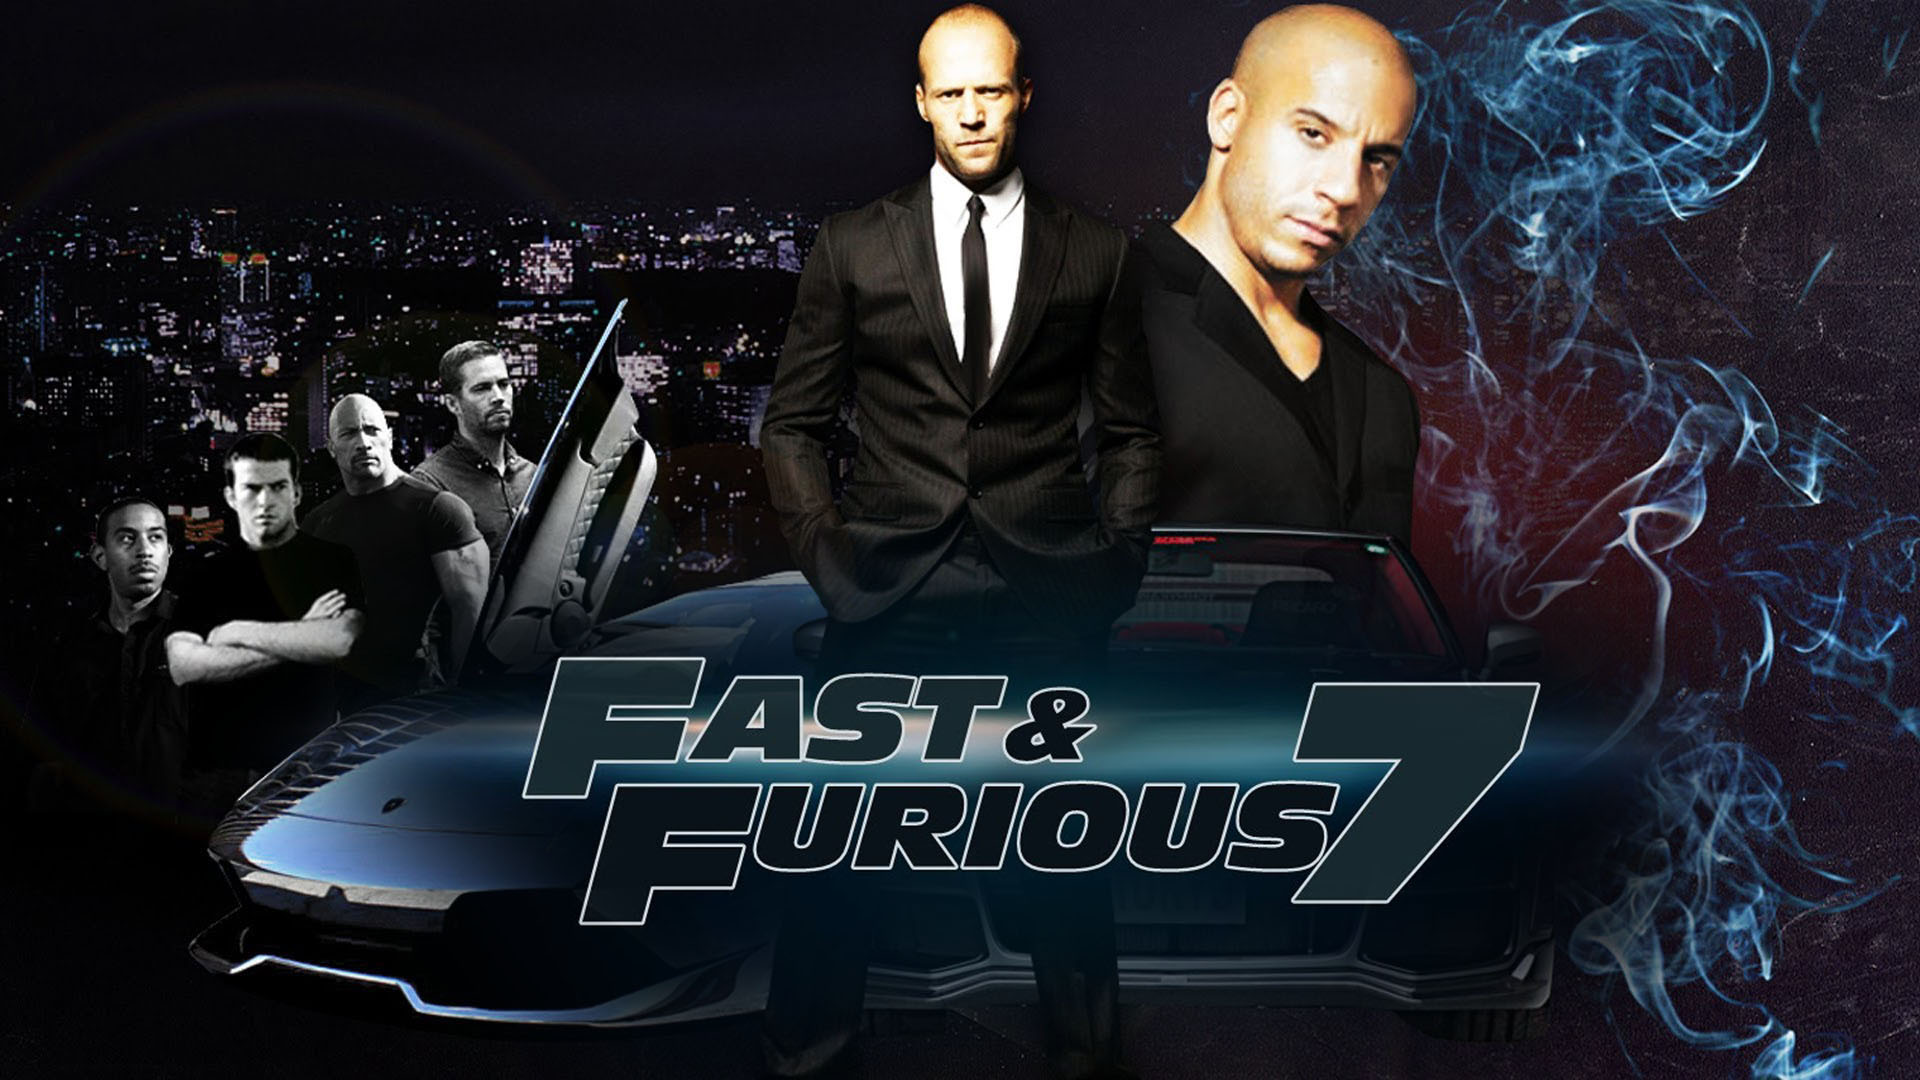 ... Fast And Furious 7 Cars Wallpapers Fast And Furious 7 Cars Wallpapers